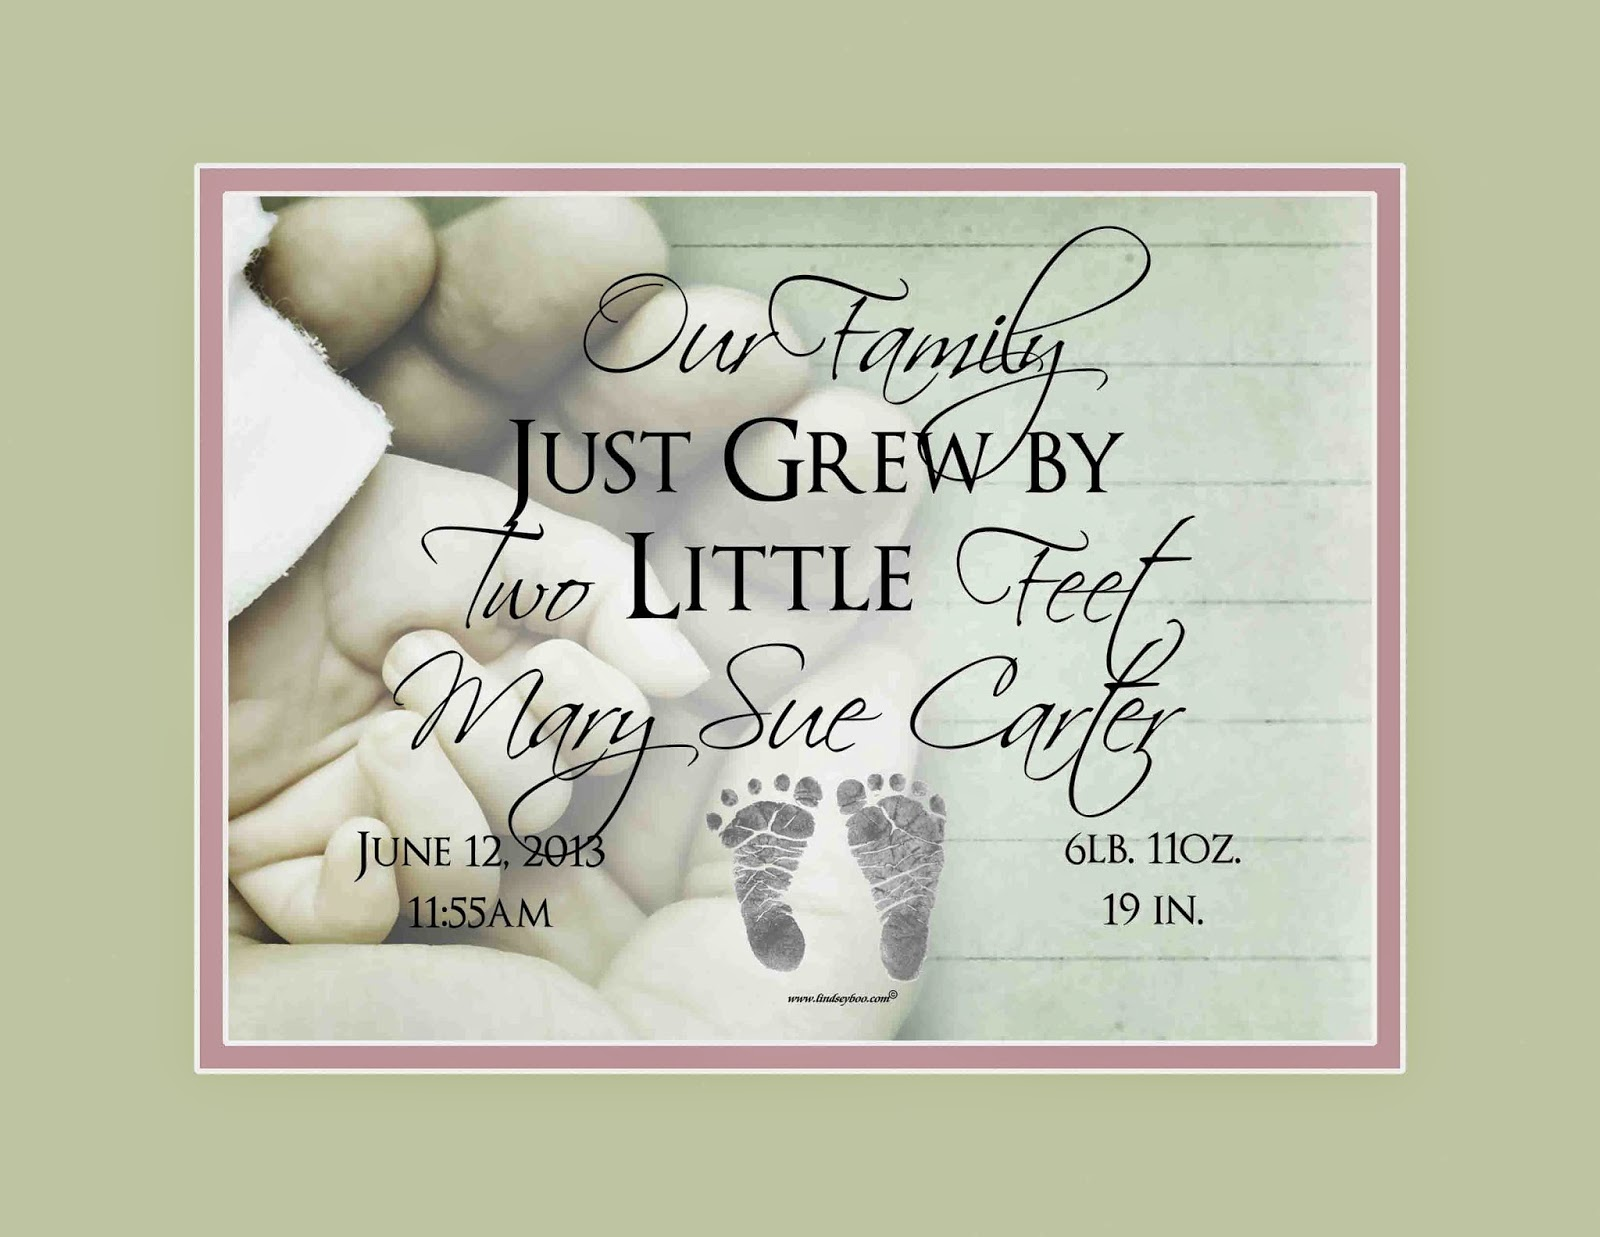 """Our Family Just Grew"" Print at LindseyBoo.com"